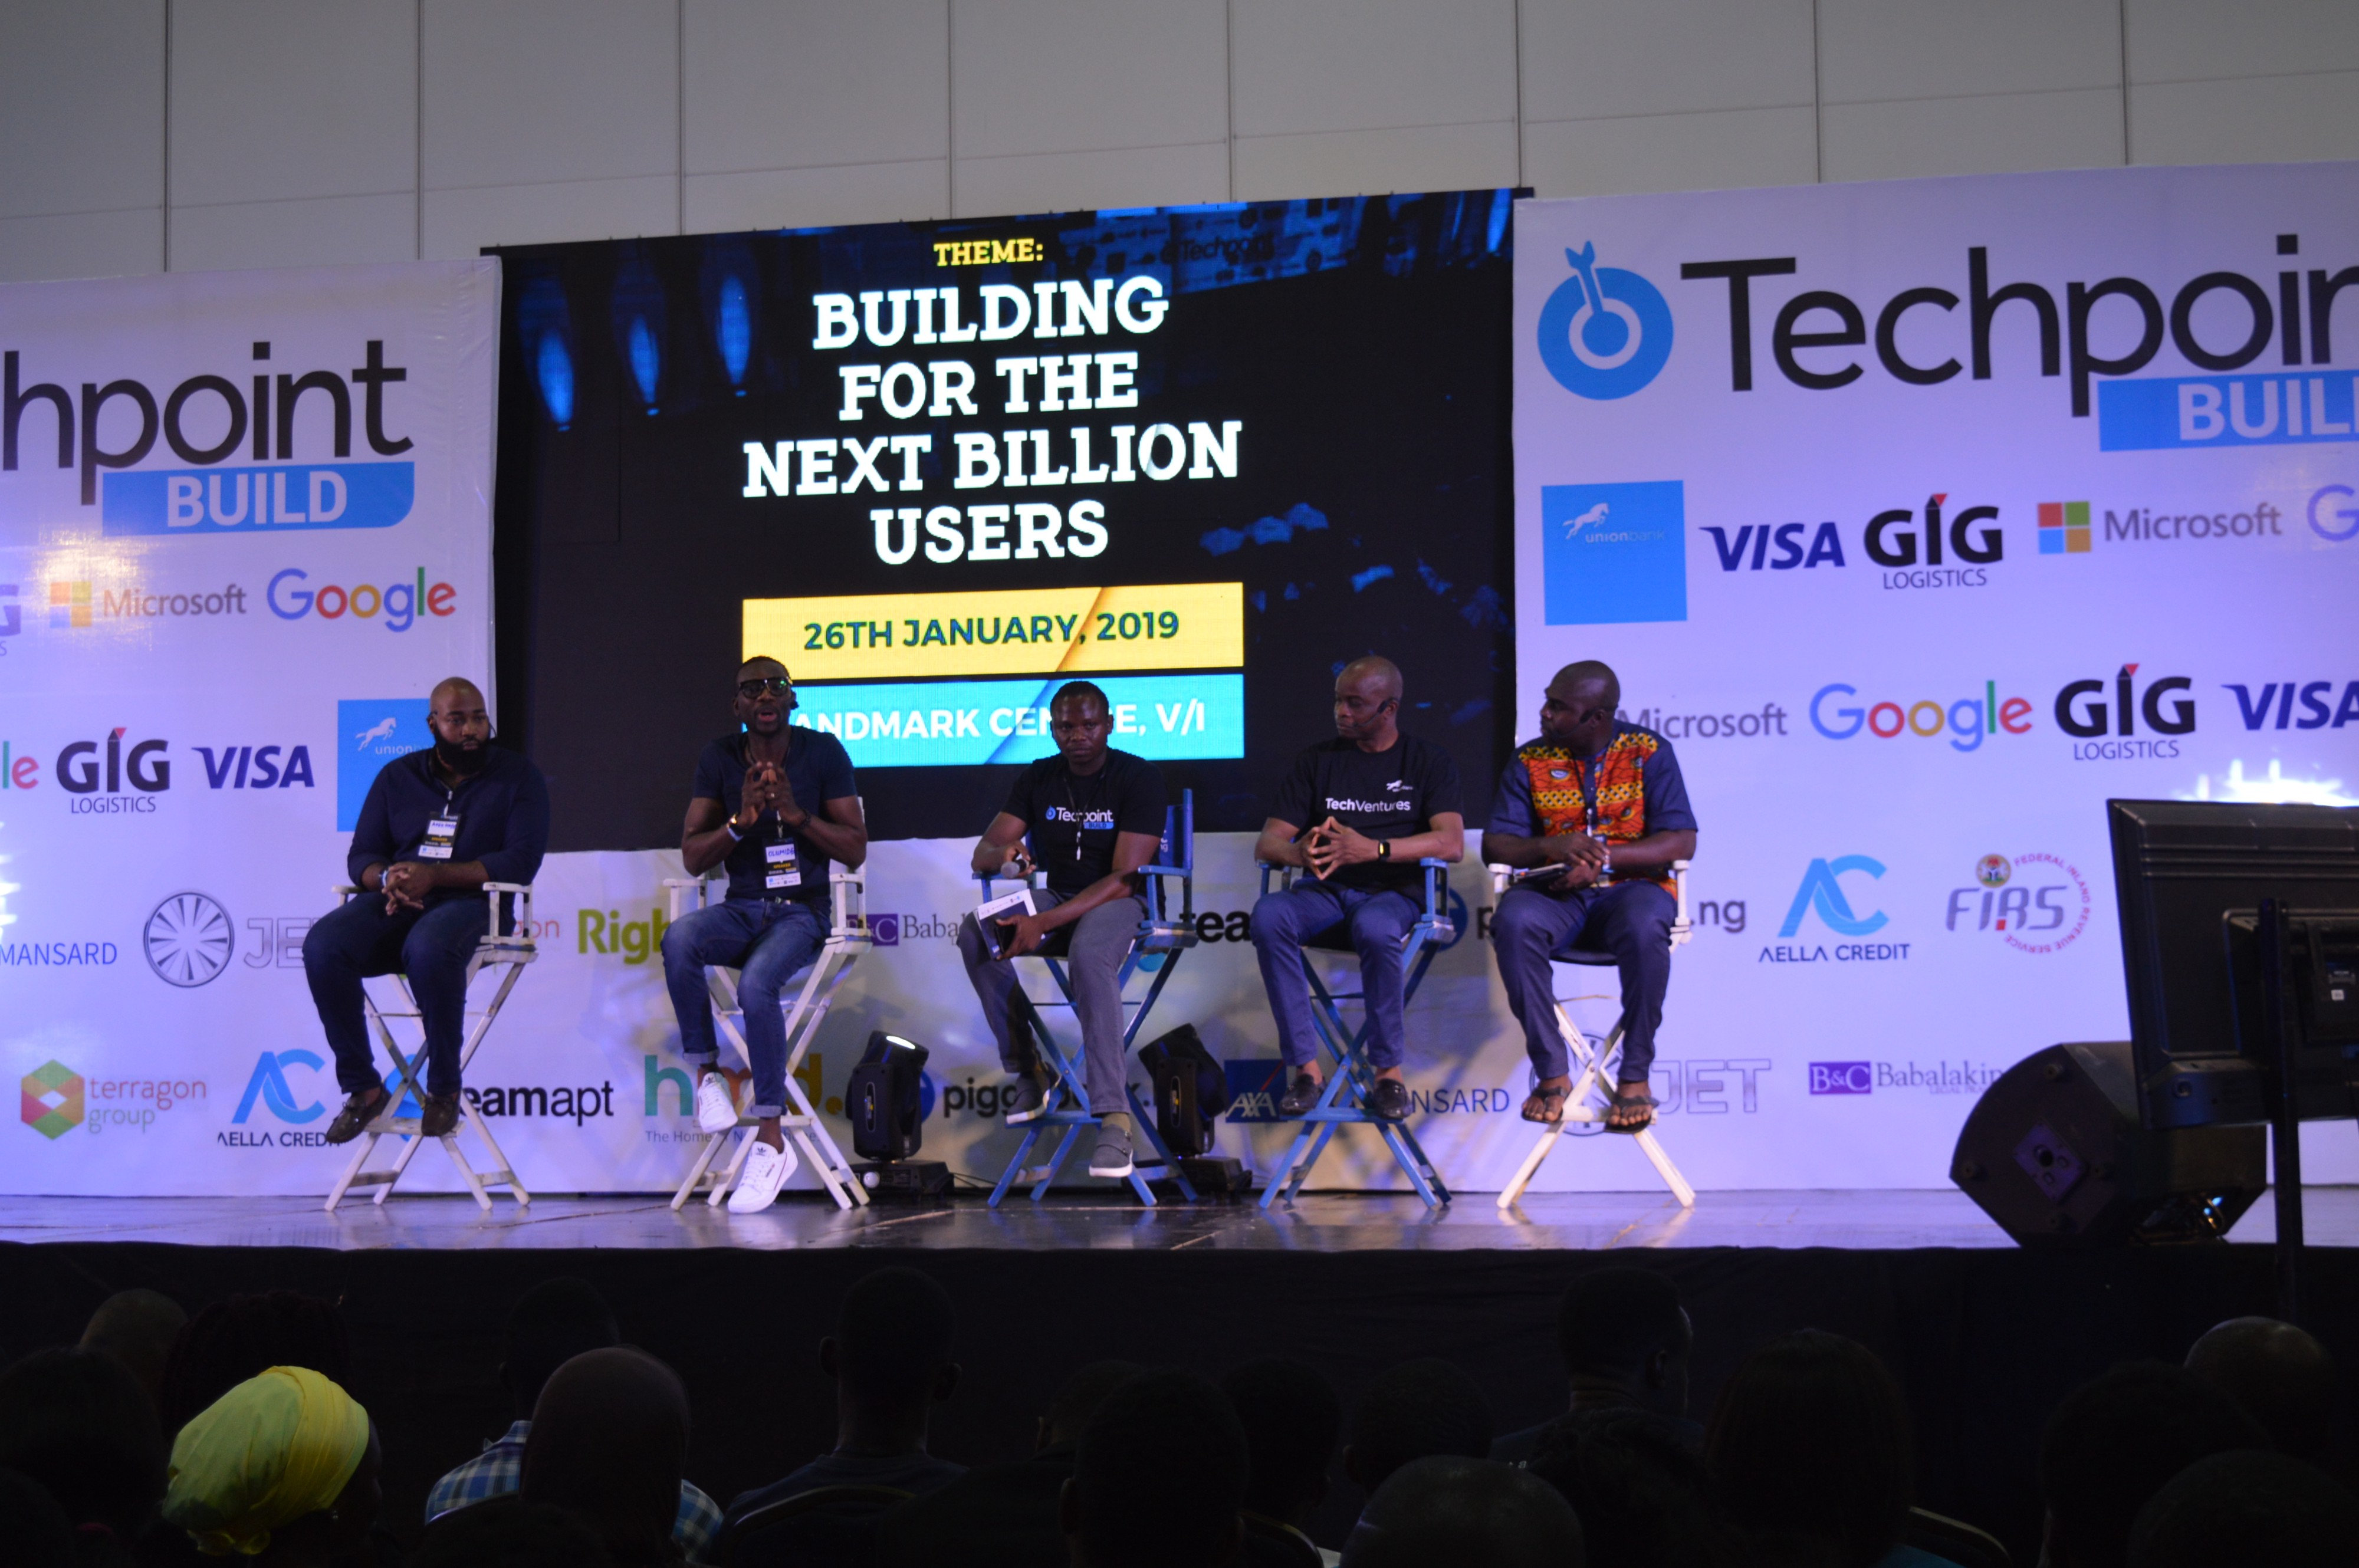 Nigeria's Union Bank launches #TechVentures platform to